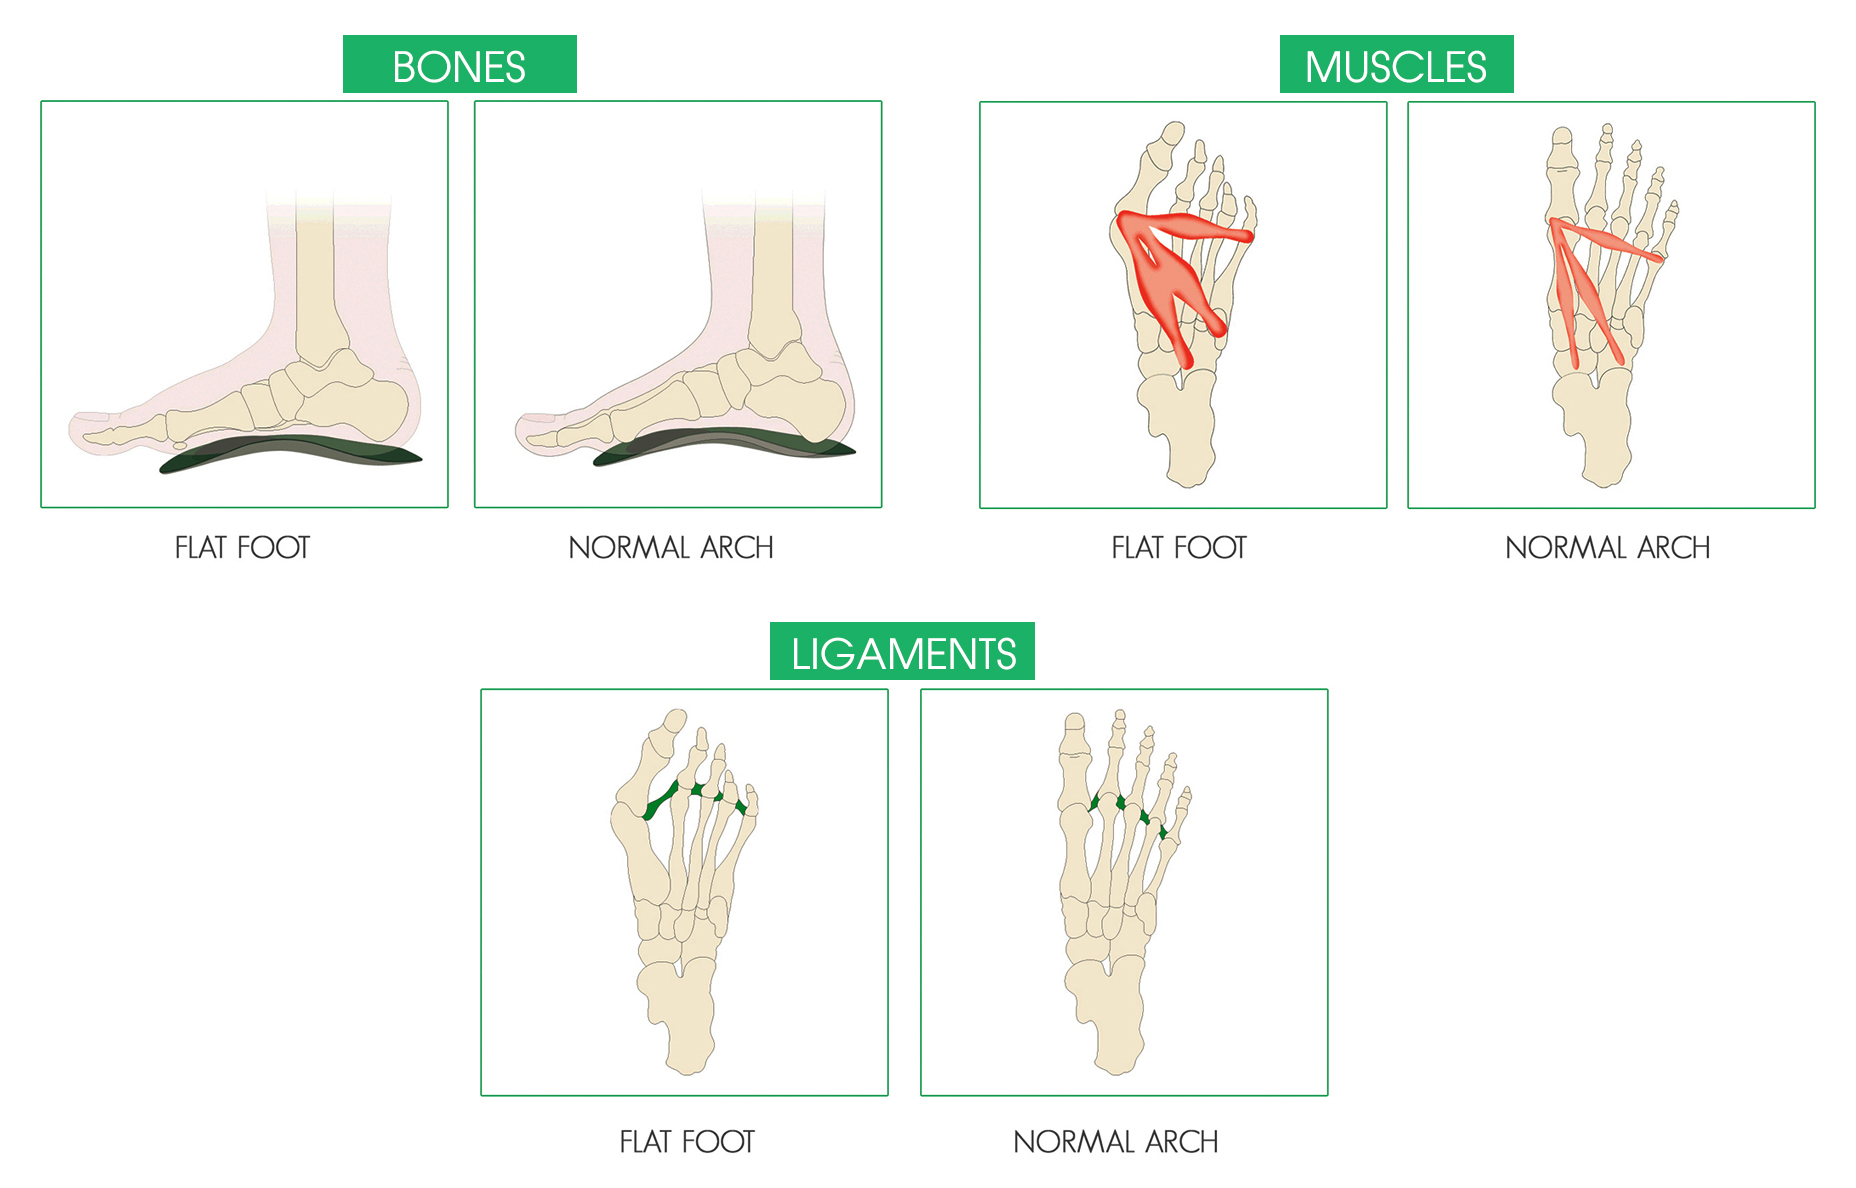 http://dubaipodiatry.com/wp-content/uploads/2019/04/3-STEPS.jpg